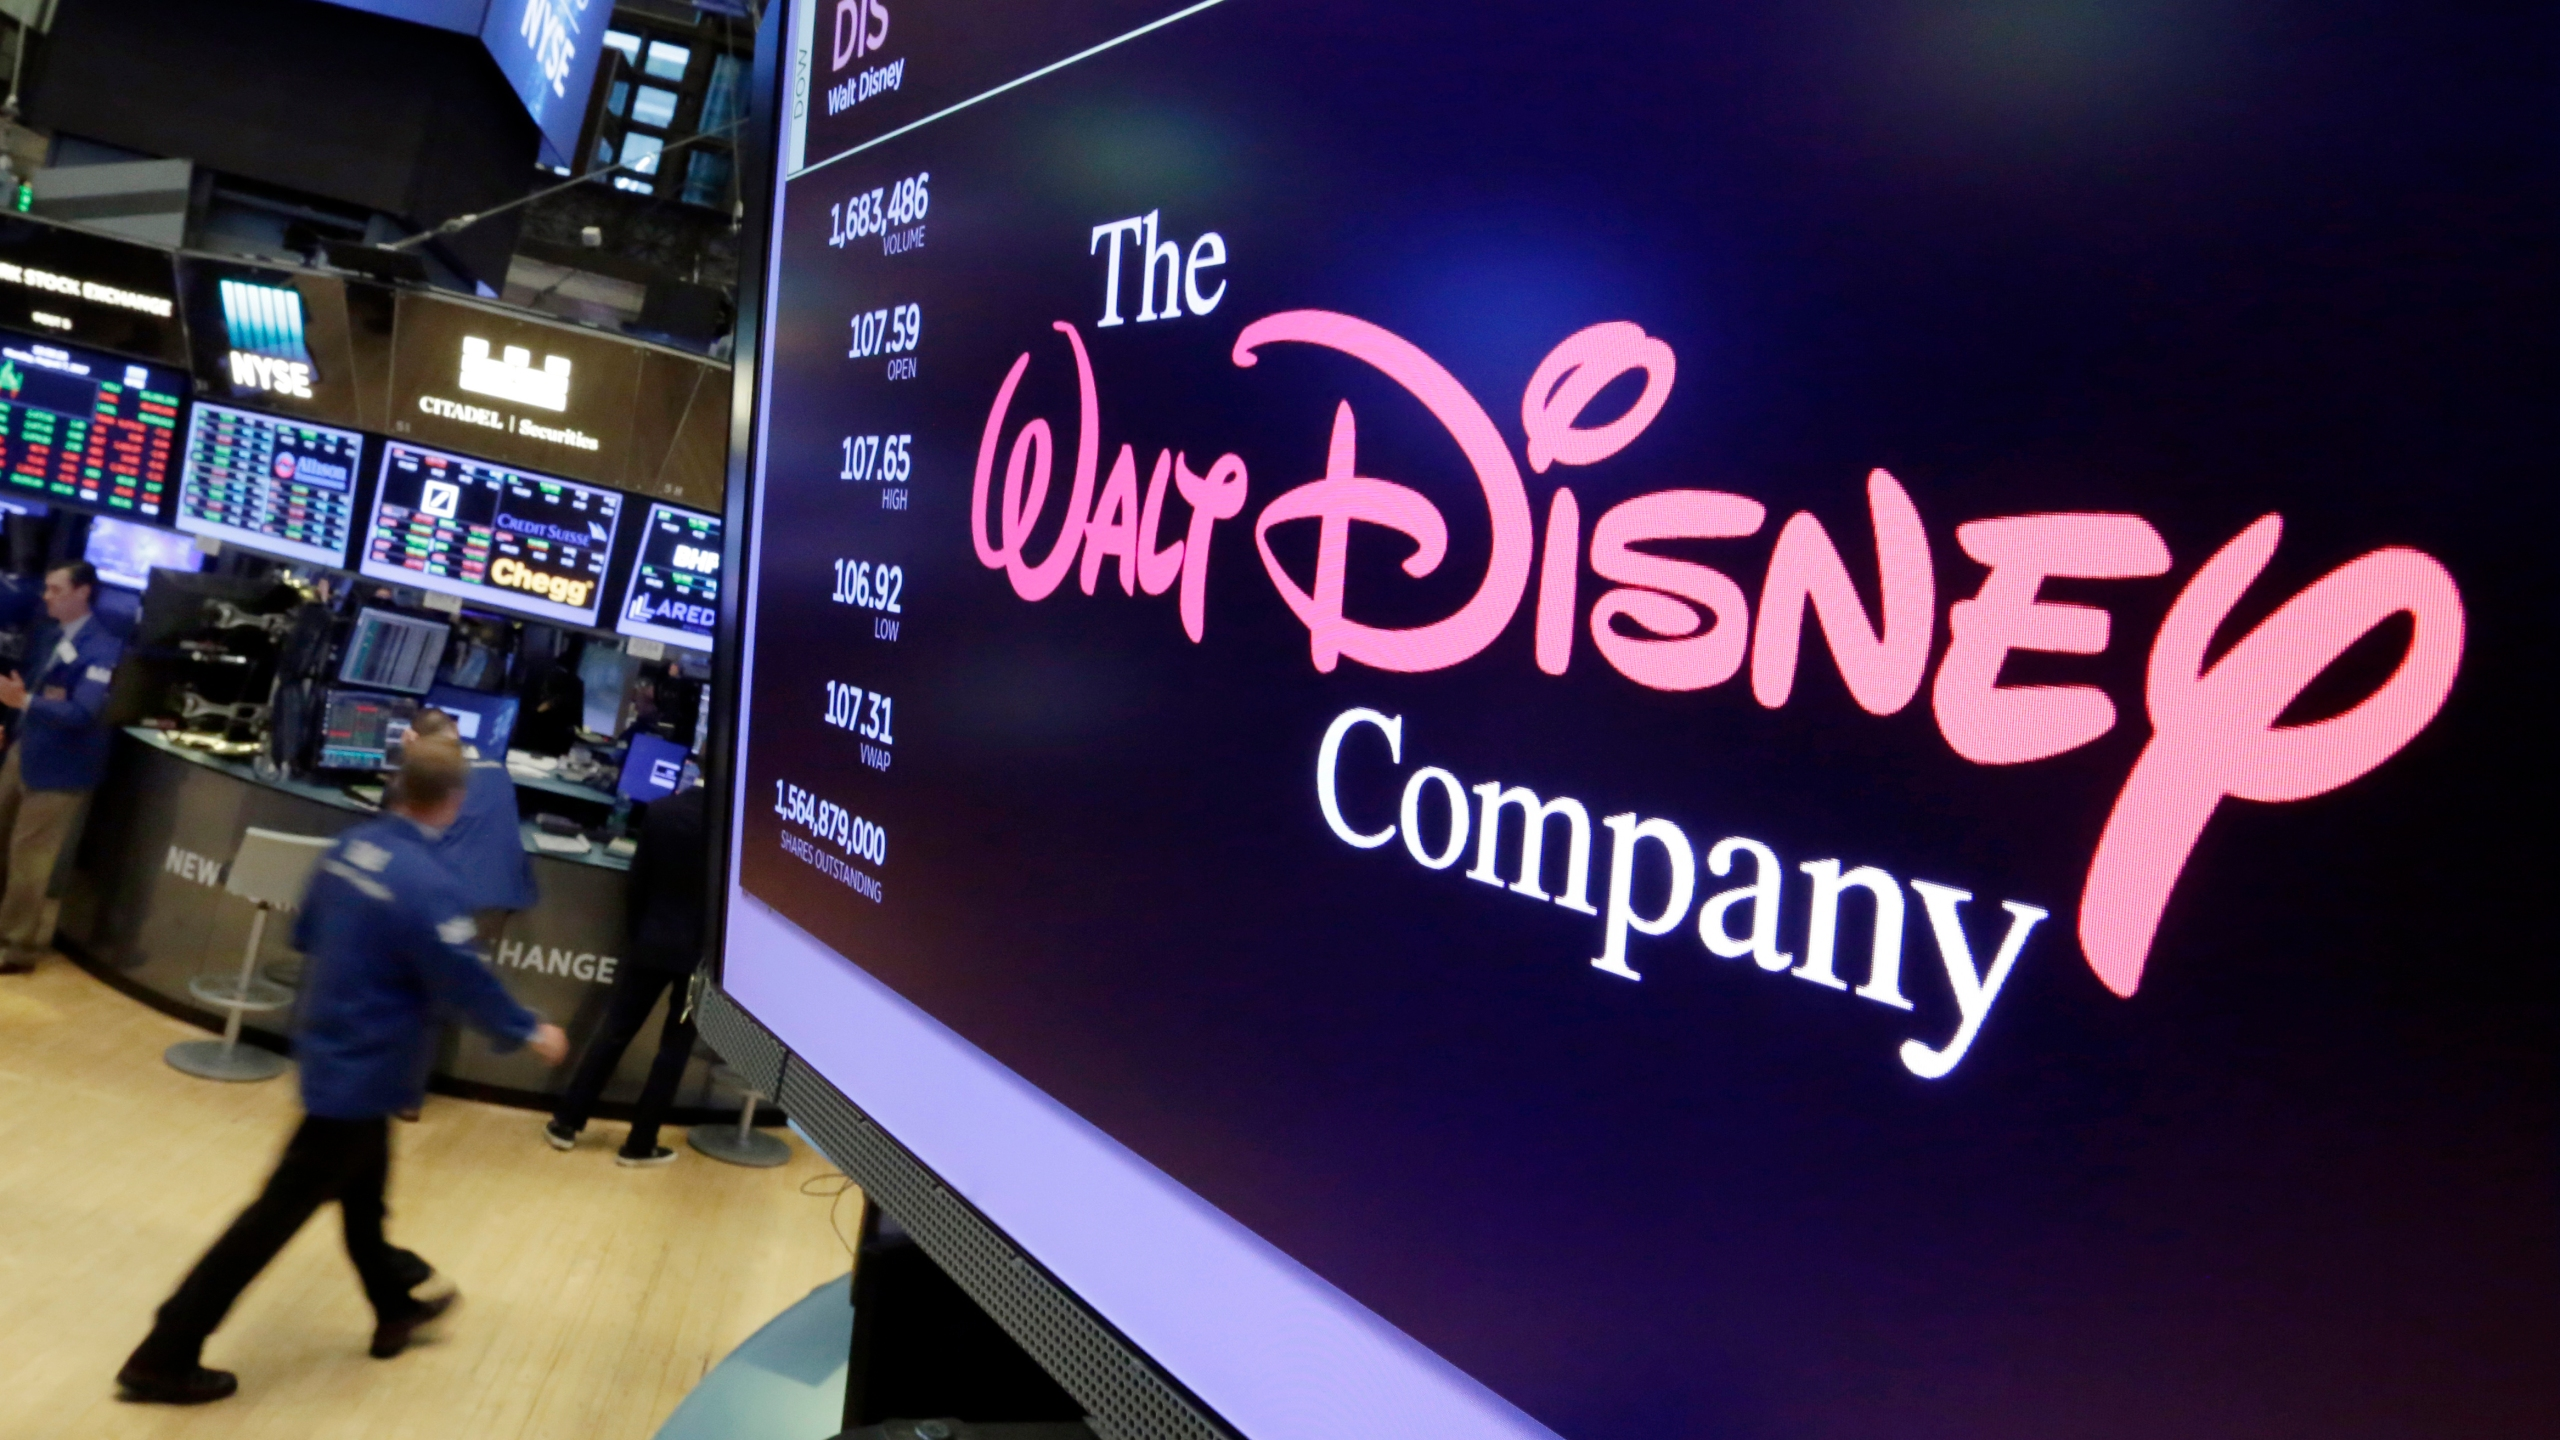 Disney Streaming Service_1555031687052